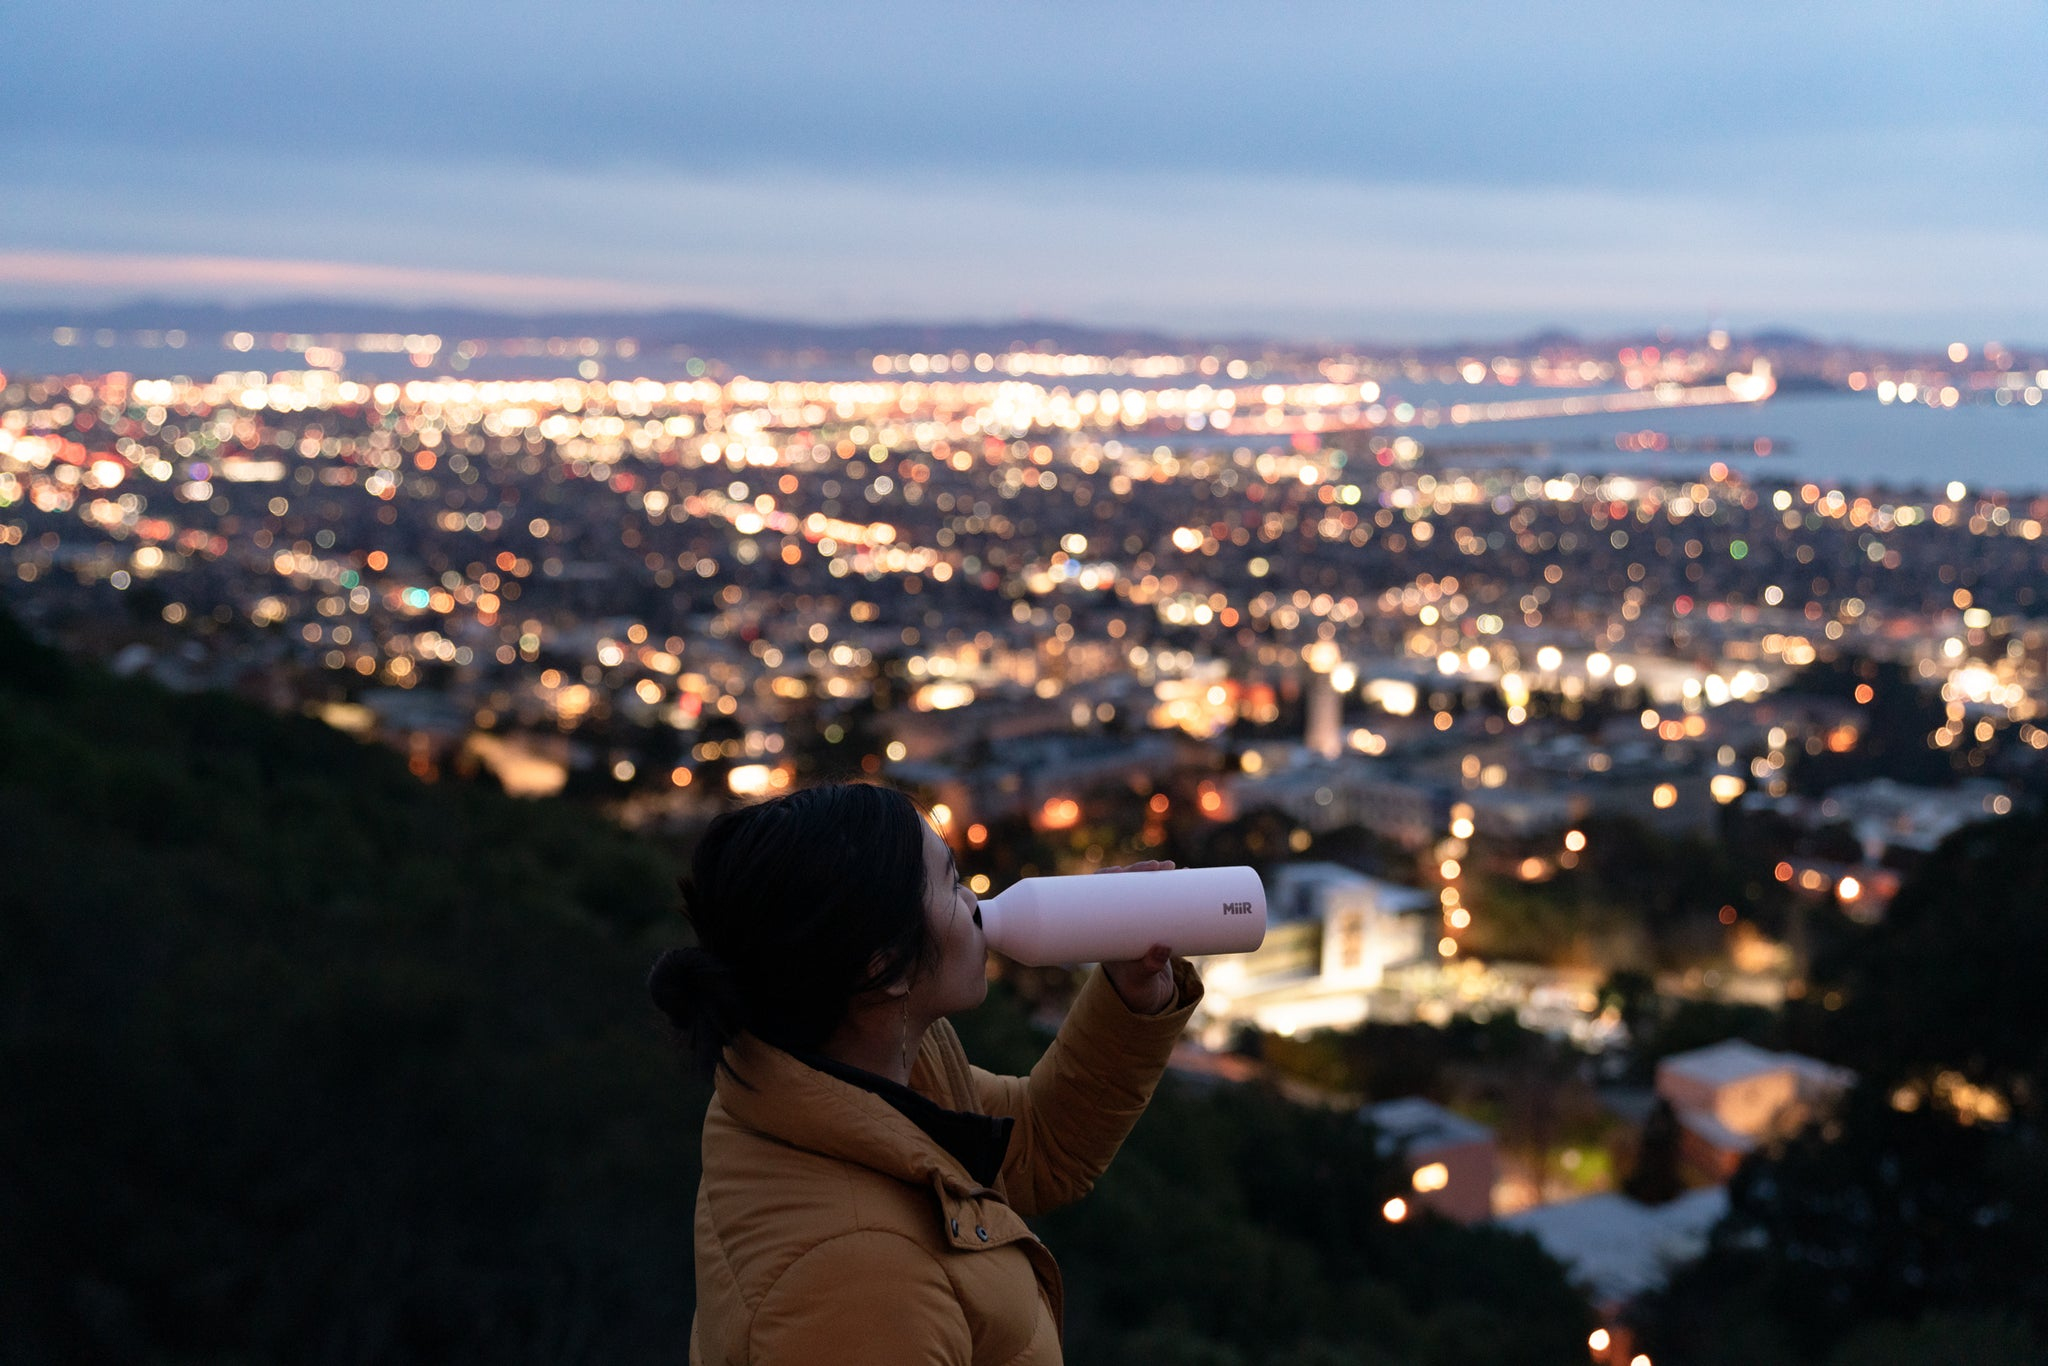 Michael Estrada and friend overlooking the SF Bay Area at dusk.